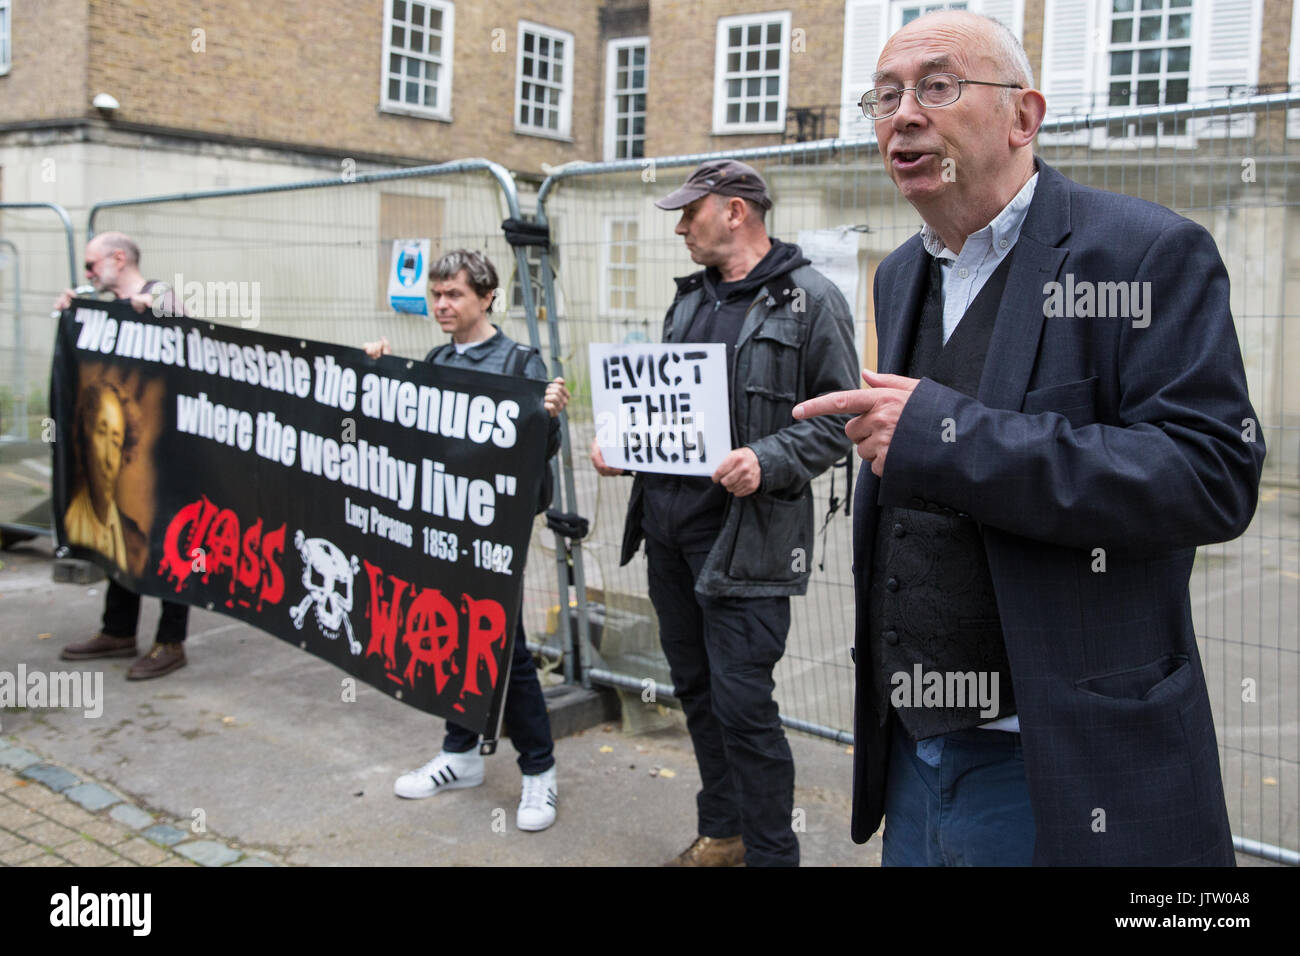 London, UK. 10th August, 2017. Ian Bone of Class War is interviewed during a protest outside Duke's Lodge in Holland Park, an empty apartment block believed to be owned by Christian Candy's Guernsey-based CPC Group, to draw attention to social housing required by former residents of the Grenfell block in North Kensington. Credit: Mark Kerrison/Alamy Live News - Stock Image